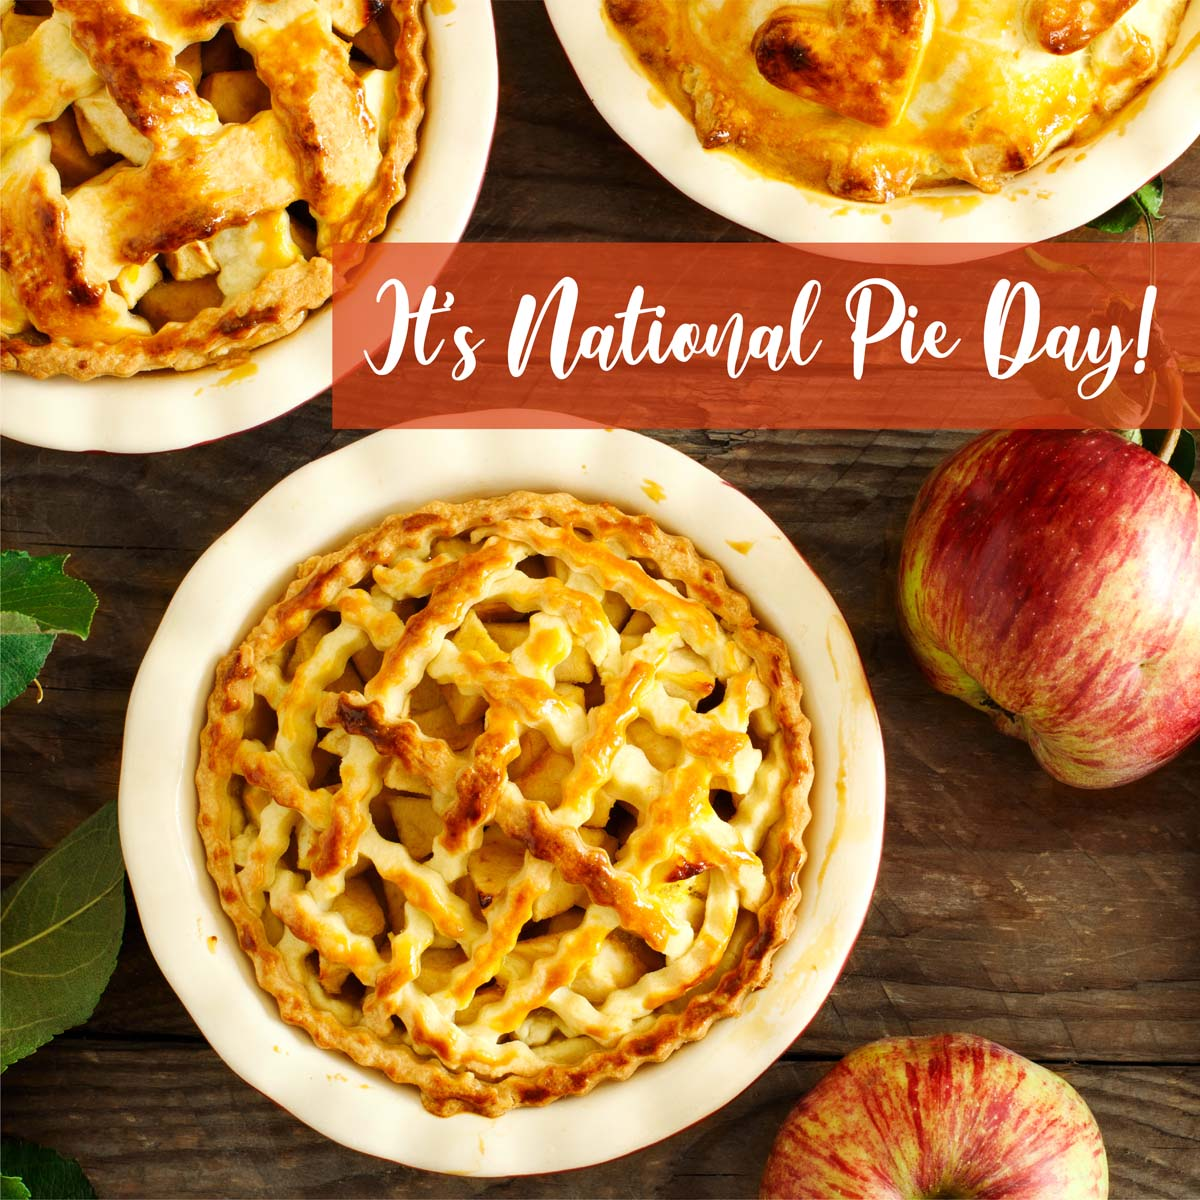 Apple? Cherry? Pumpkin? What are you baking this #NationalPieDay? Have a favorite? Let us know in the comments below!  #pie #food #dessert #cake #homemade #foodie #baking #pies #piesofinstagram #instafood #pastry #applepie #delicious #foodphotography #foodstagram